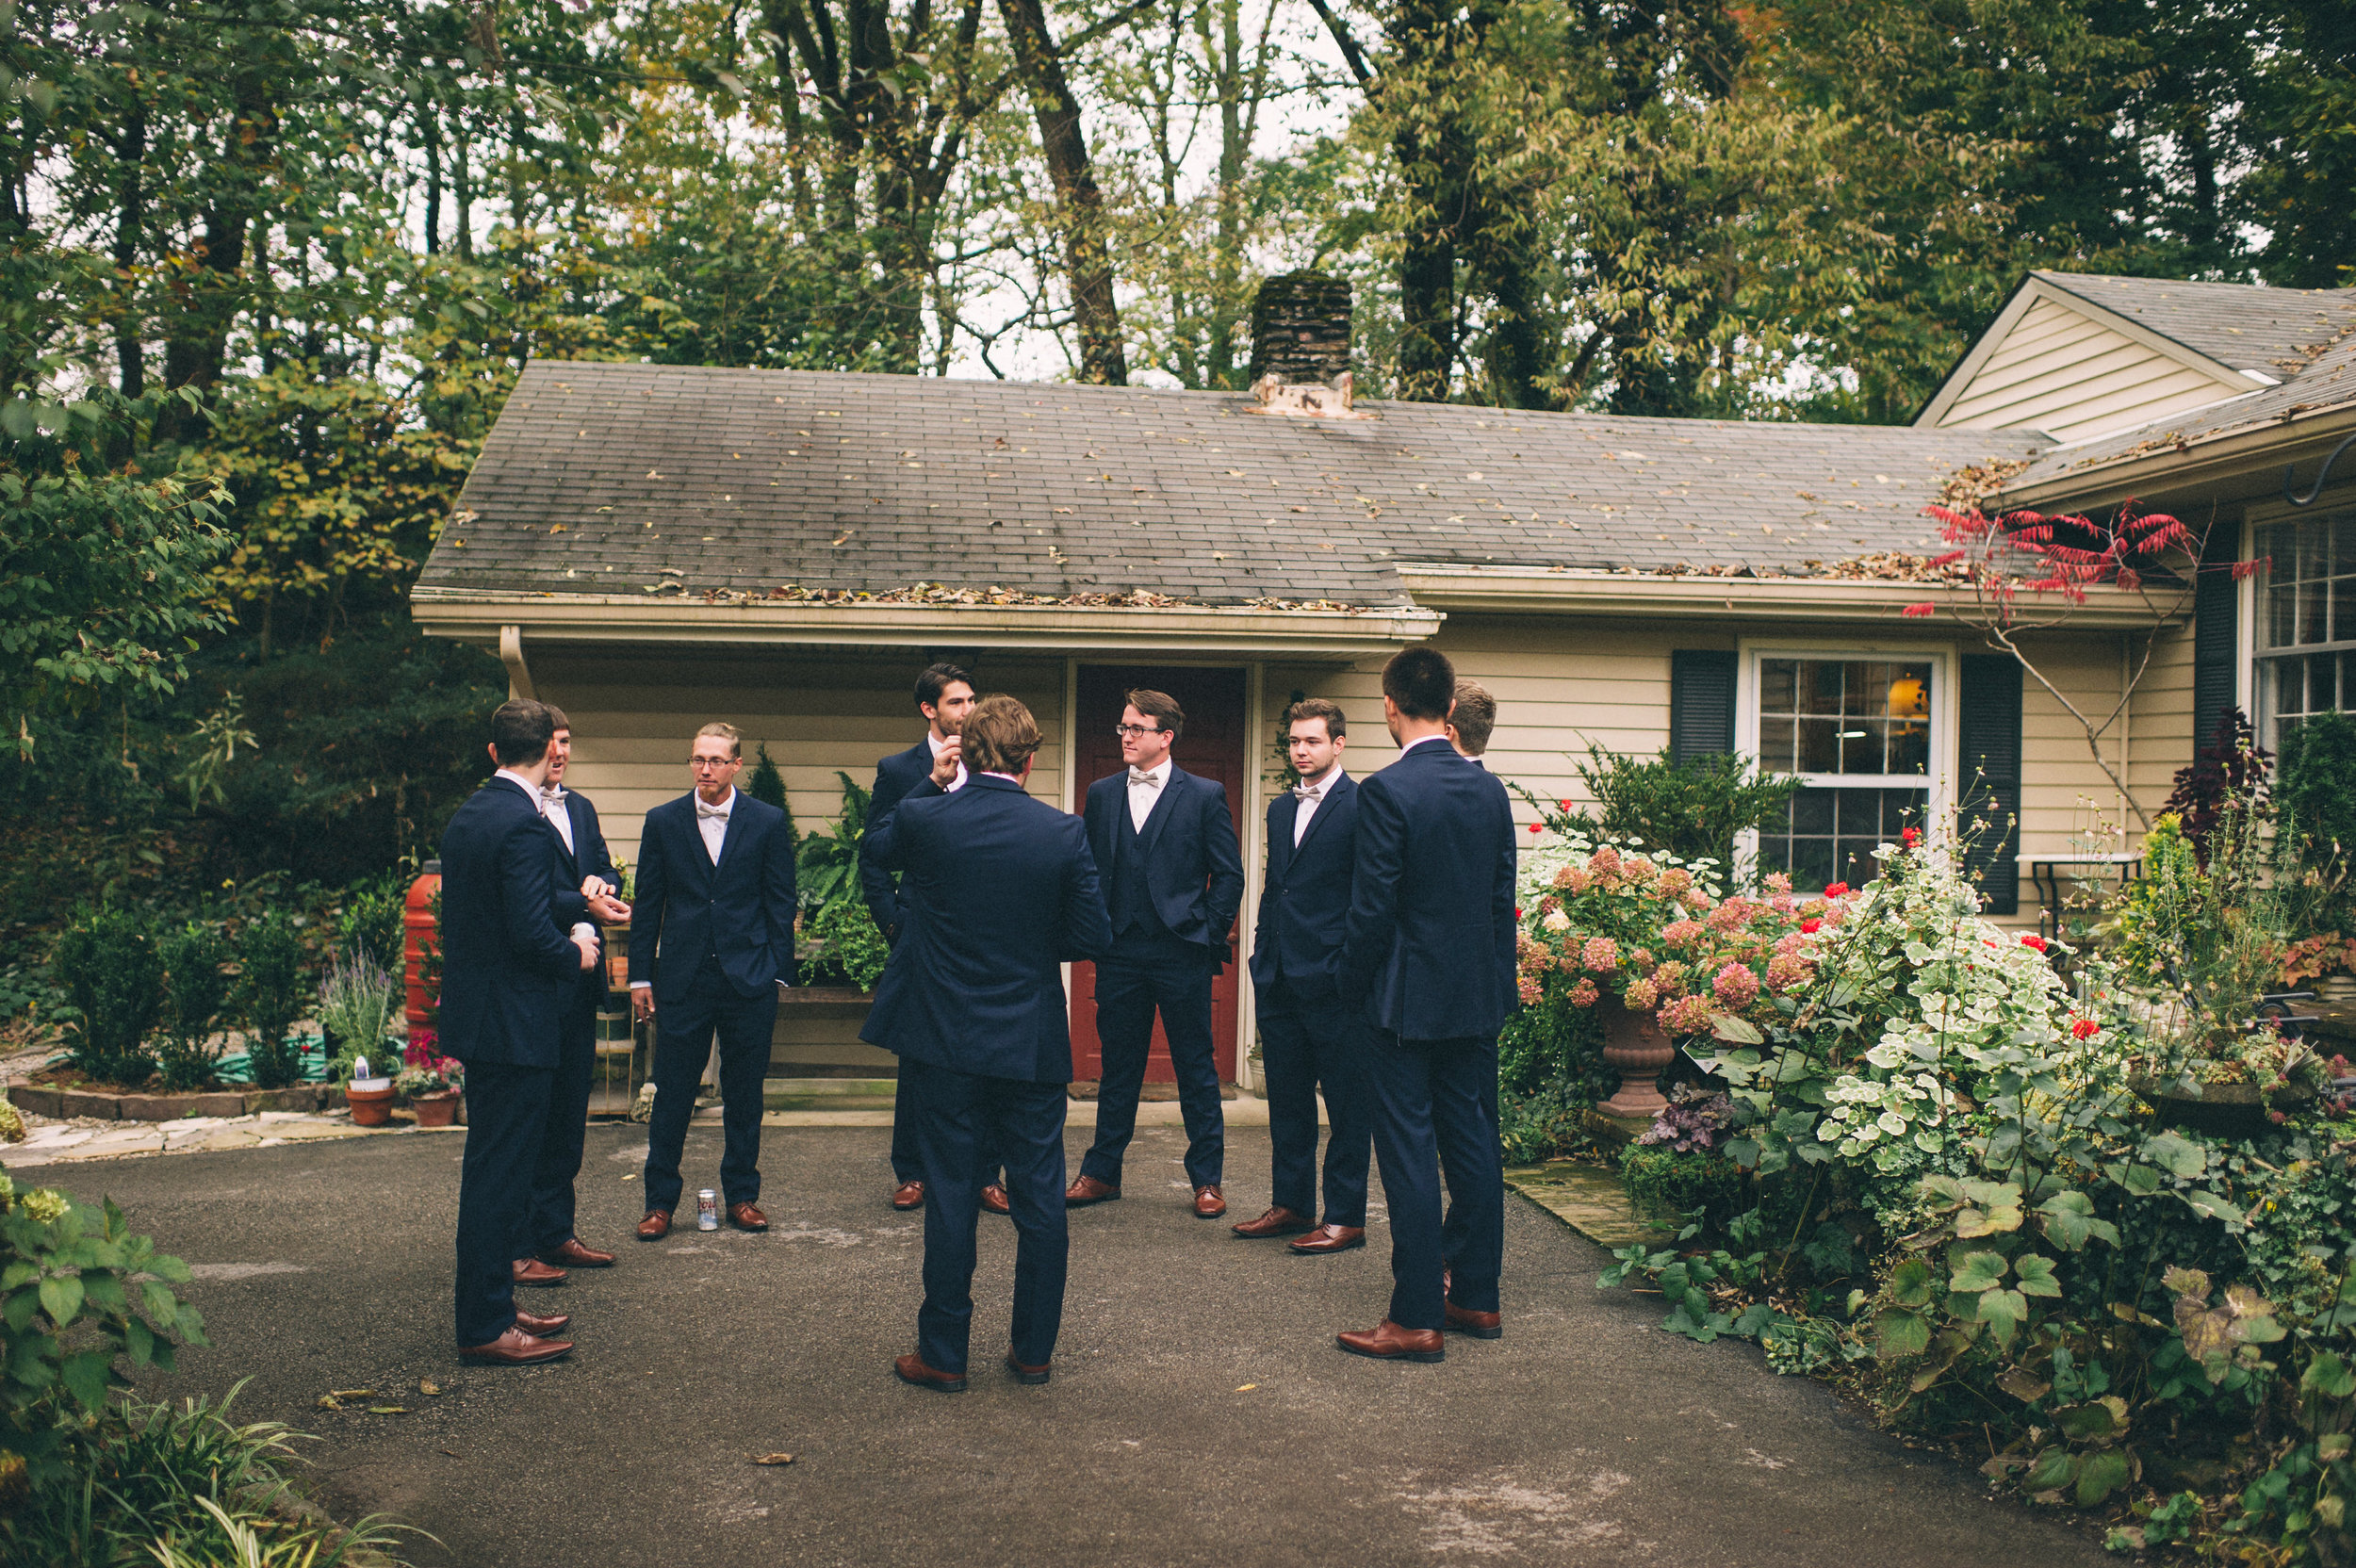 Micaha & Austin // Cozy Autumn Wedding at Springhouse Gardens // Lexington, Kentucky // Wedding Photography // Groomsmen